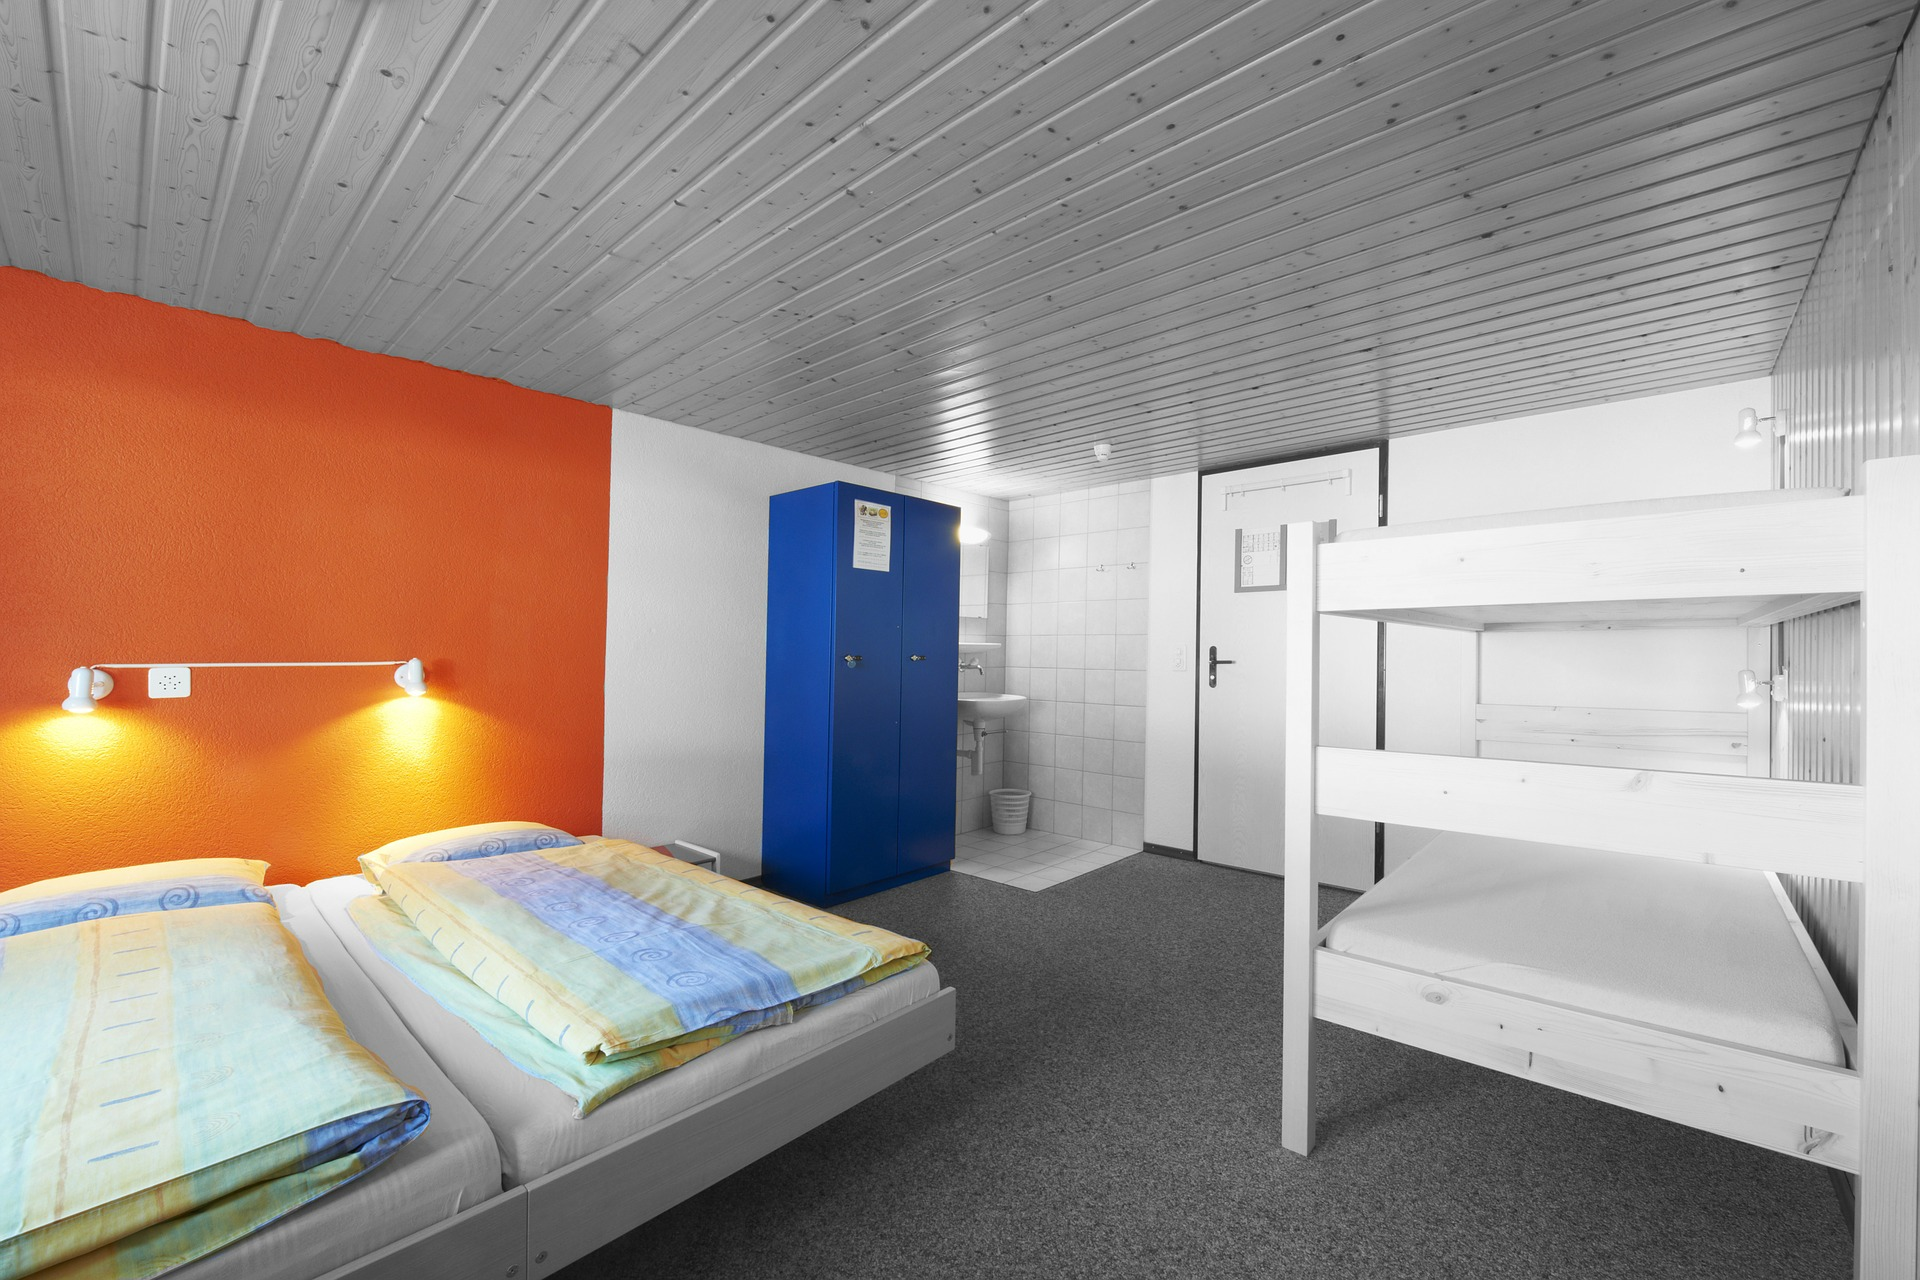 Beds in a hostel dorm room